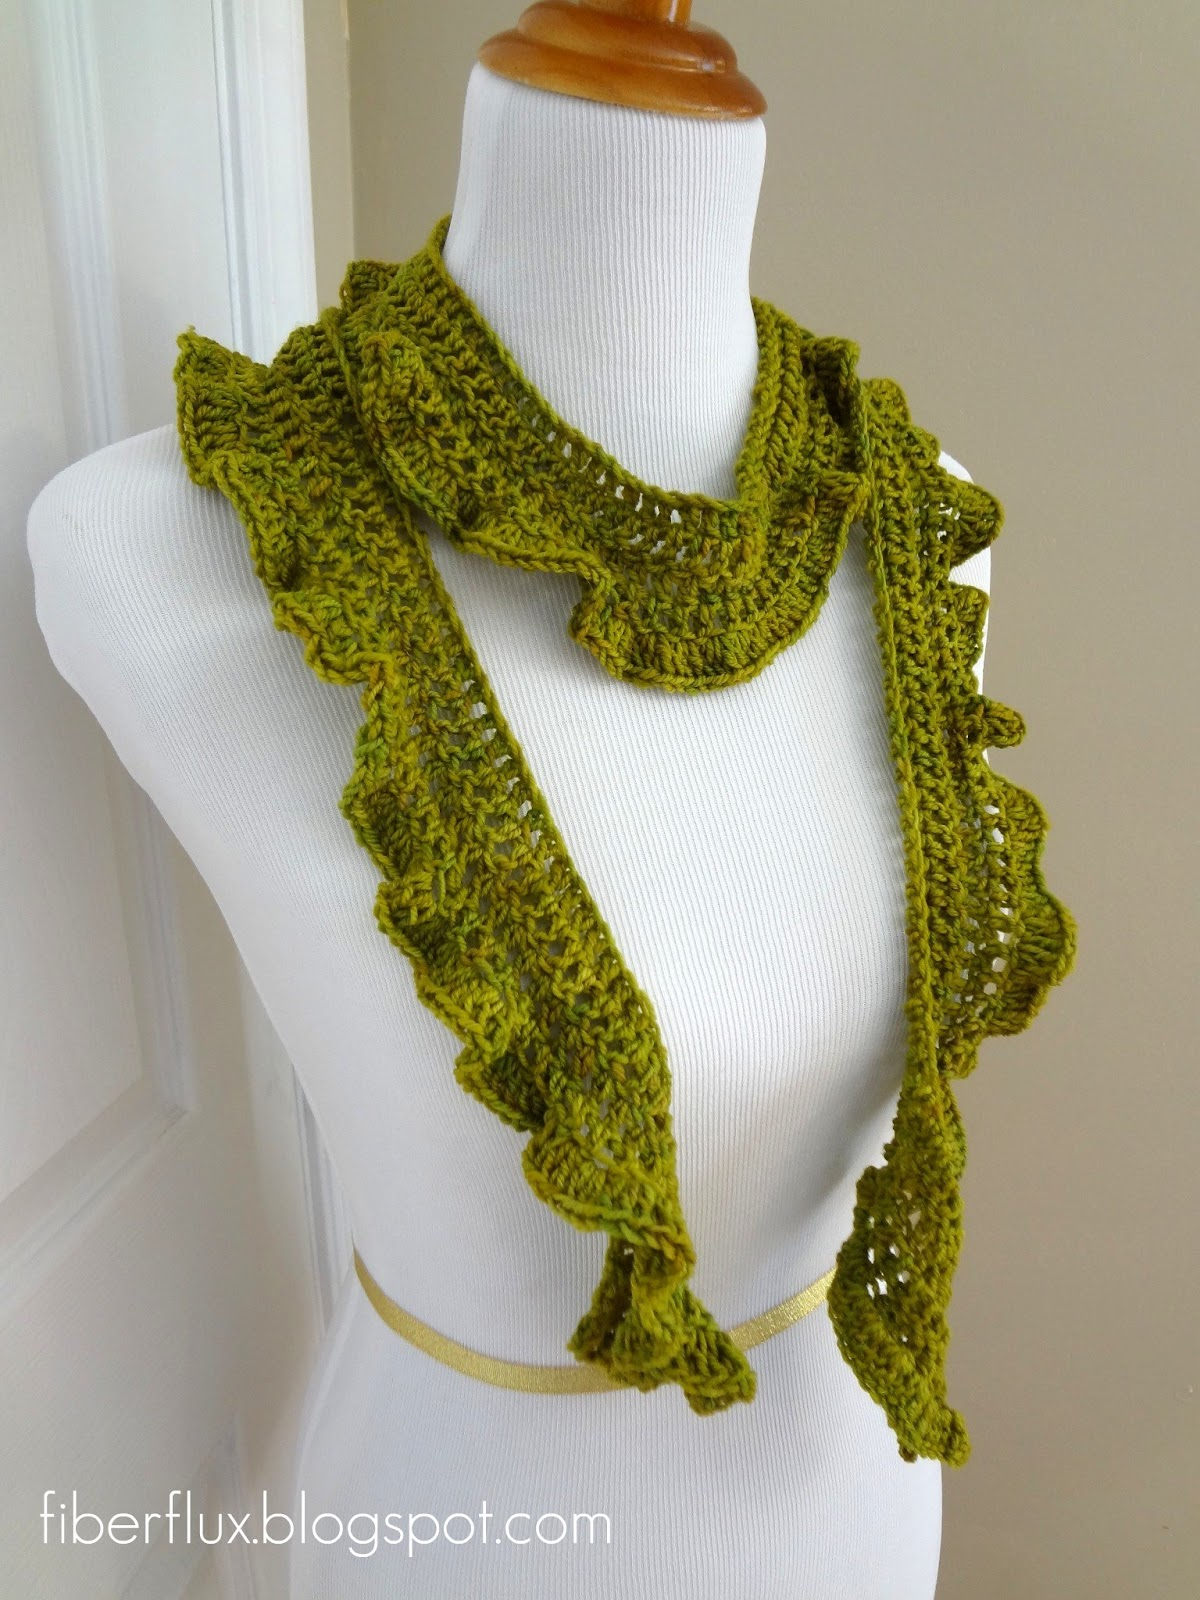 Crochet Patterns Light Weight Yarn : the arugula scarf is a luxurious light weight scarf that can be worn ...